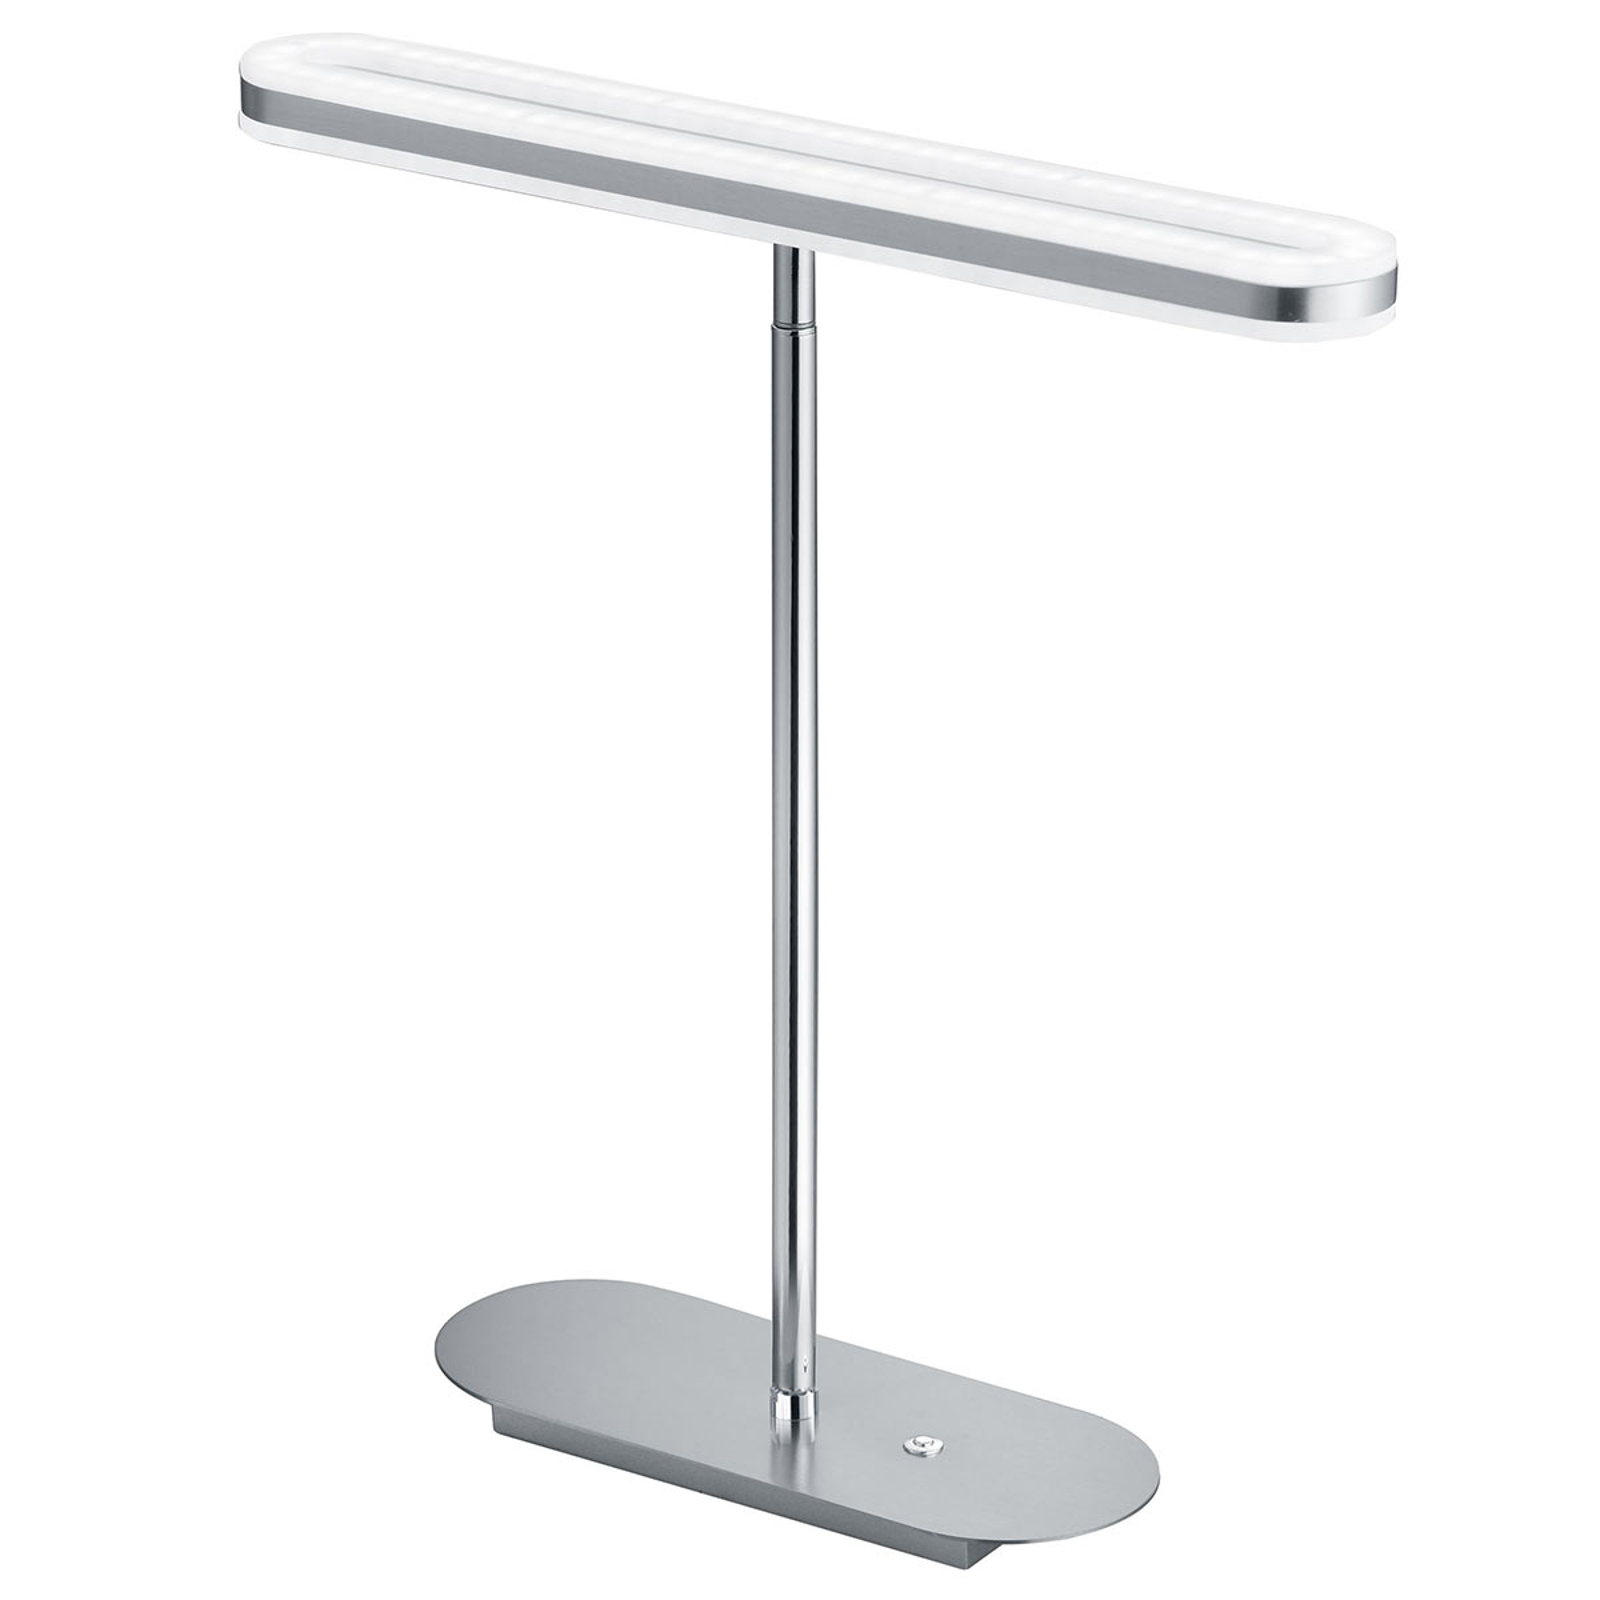 Lampe à poser LED Ontario flexible, dimmable